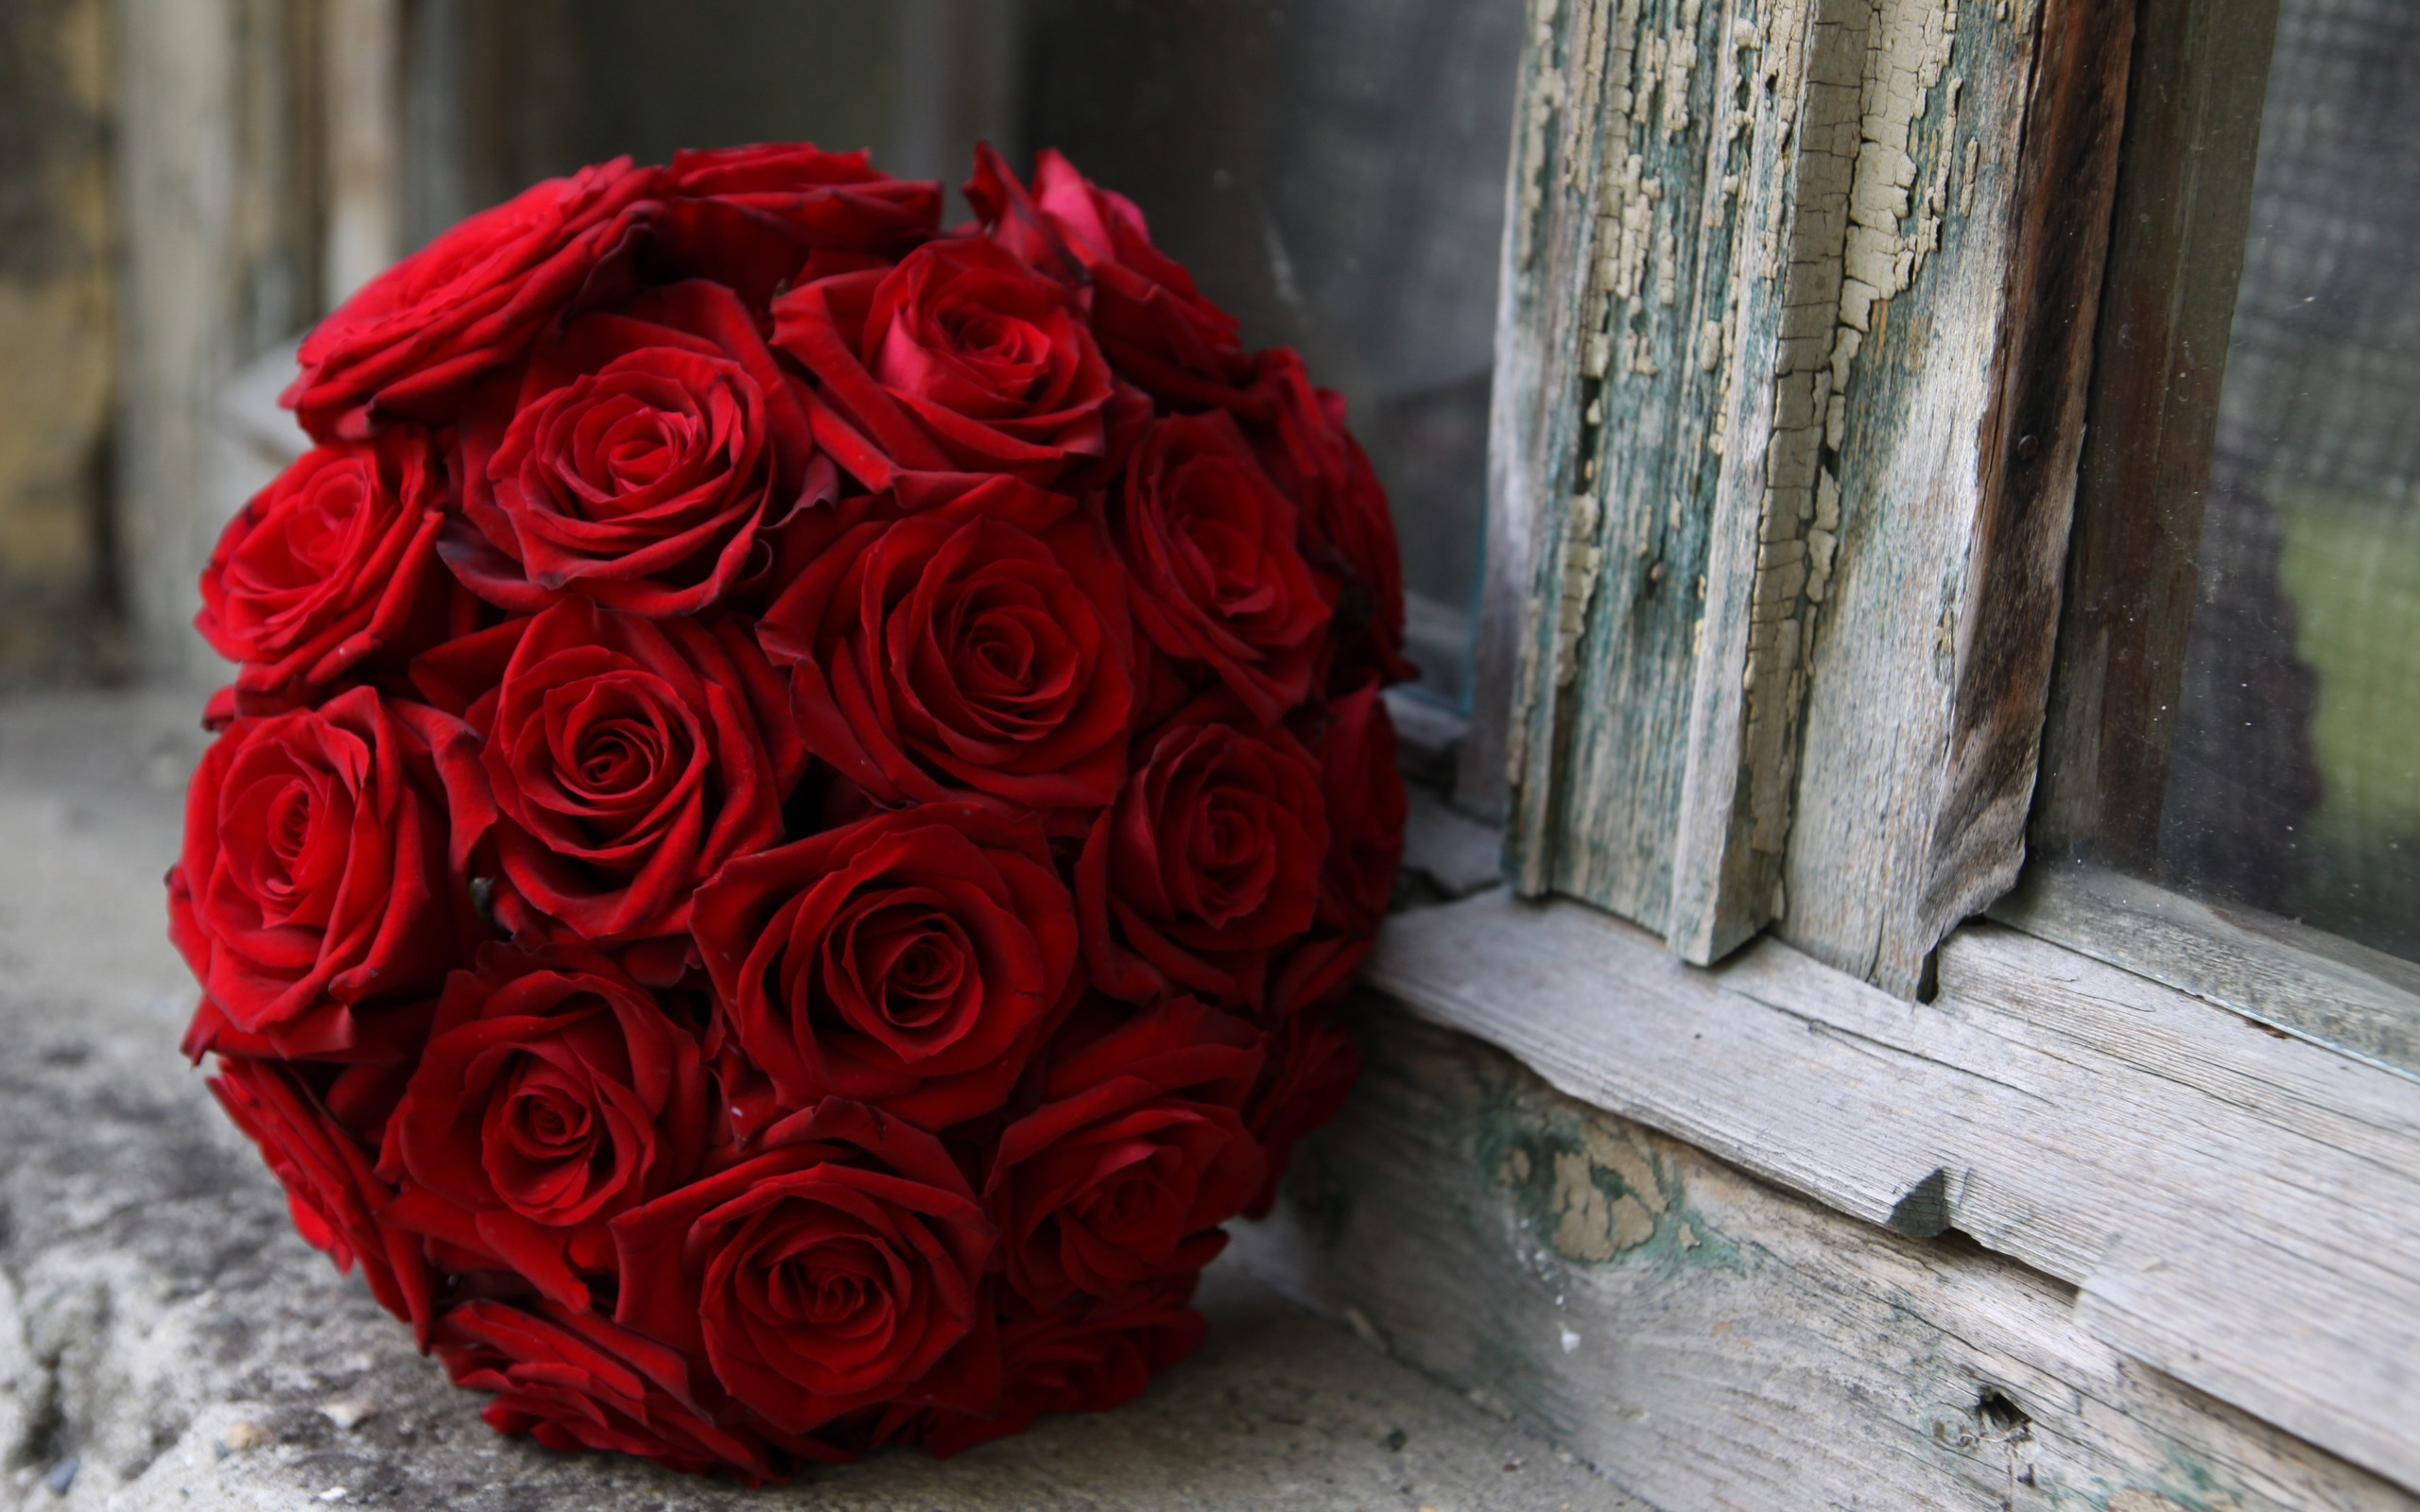 Flower wallpaper red rose 63 images 2560x1600 flowers wallpapers previous wallpaper beautiful red rose izmirmasajfo